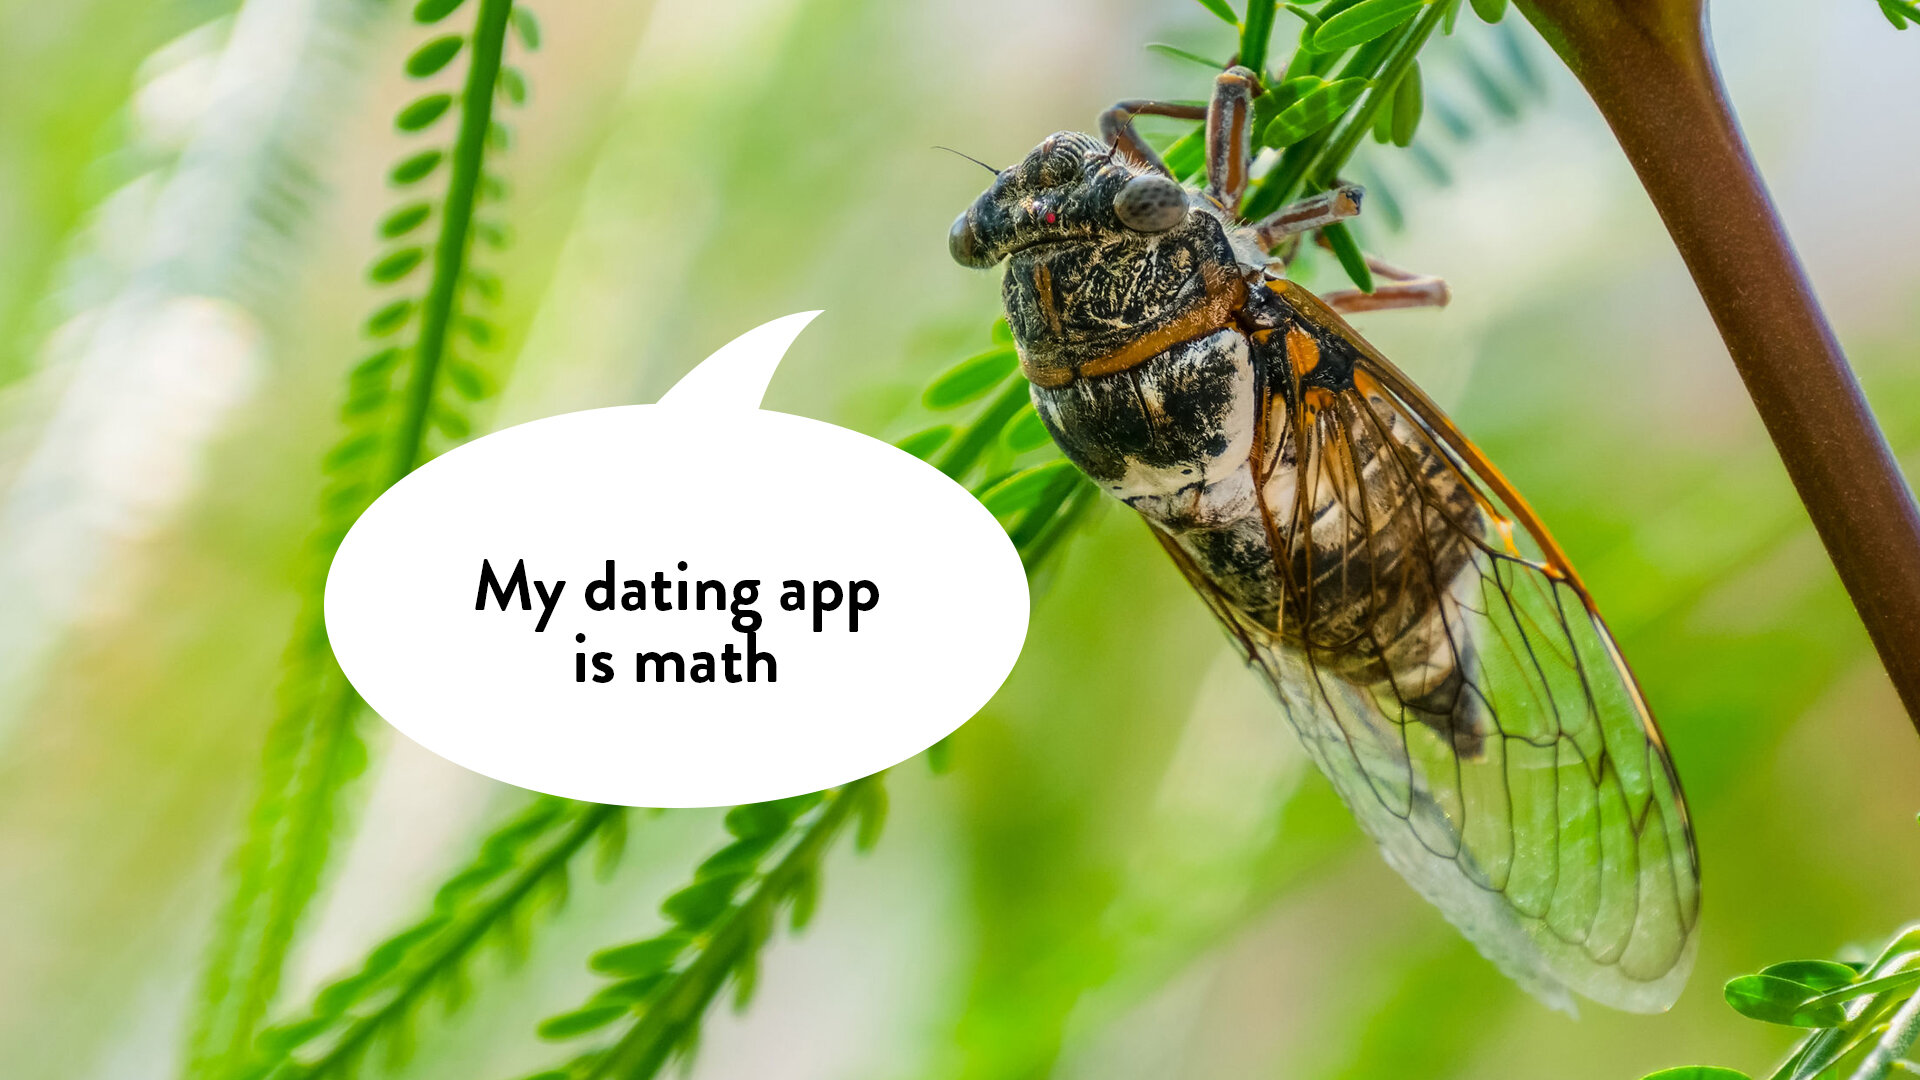 44: Cicadas use prime numbers as an evolutionary strategy:  https://www.youtube.com/watch?v=tjLiWy2nT7U